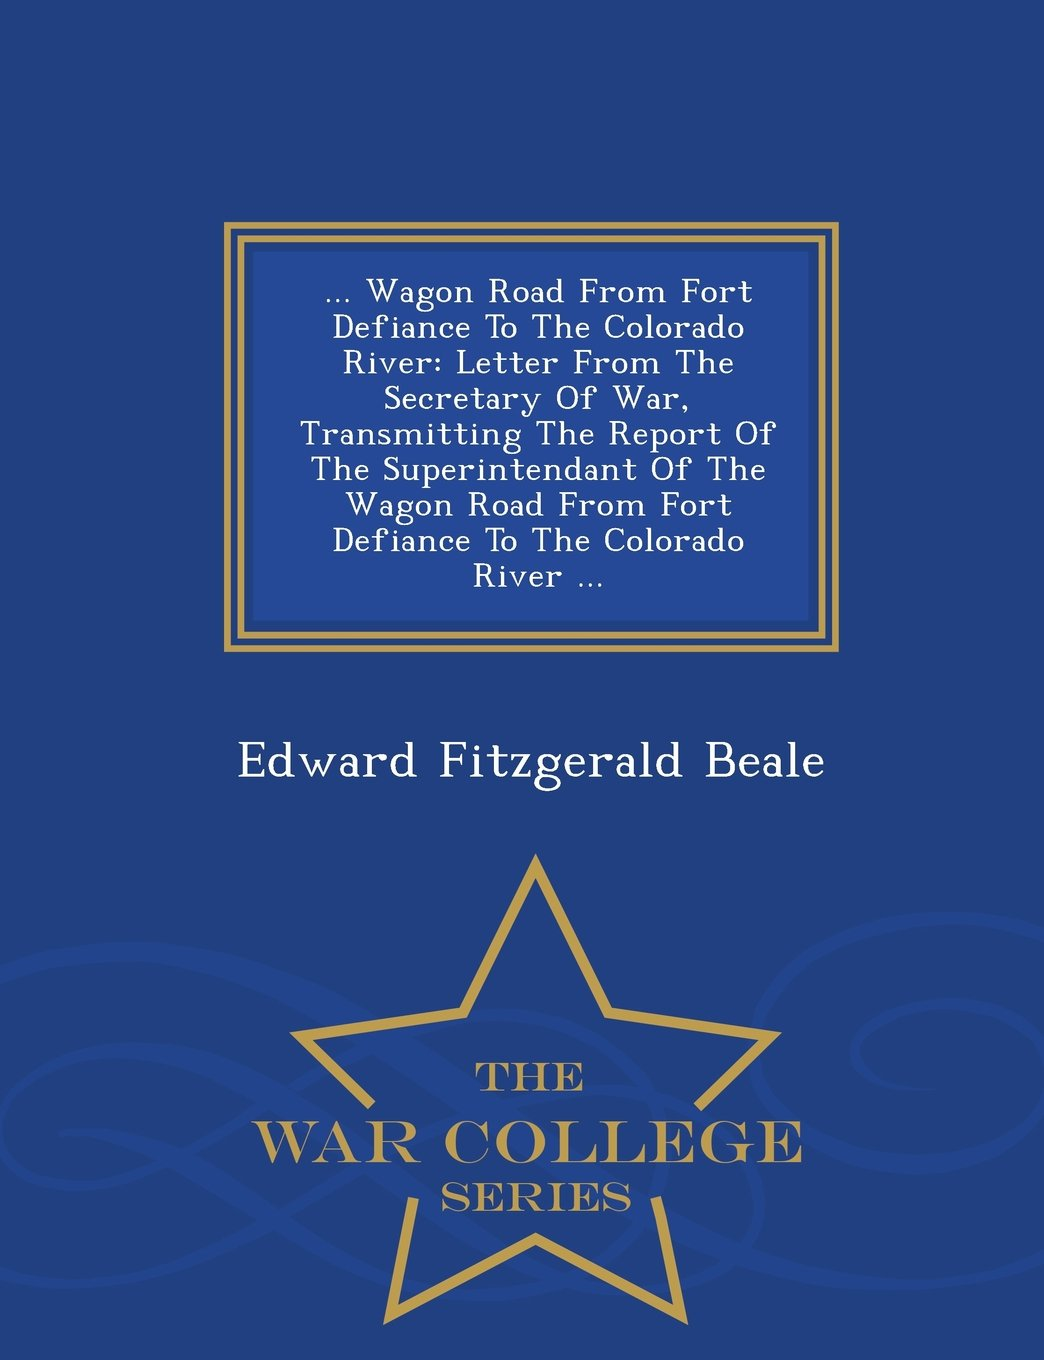 ... Wagon Road From Fort Defiance To The Colorado River: Letter From The Secretary Of War, Transmitting The Report Of The Superintendant Of The Wagon ... The Colorado River ... - War College Series pdf